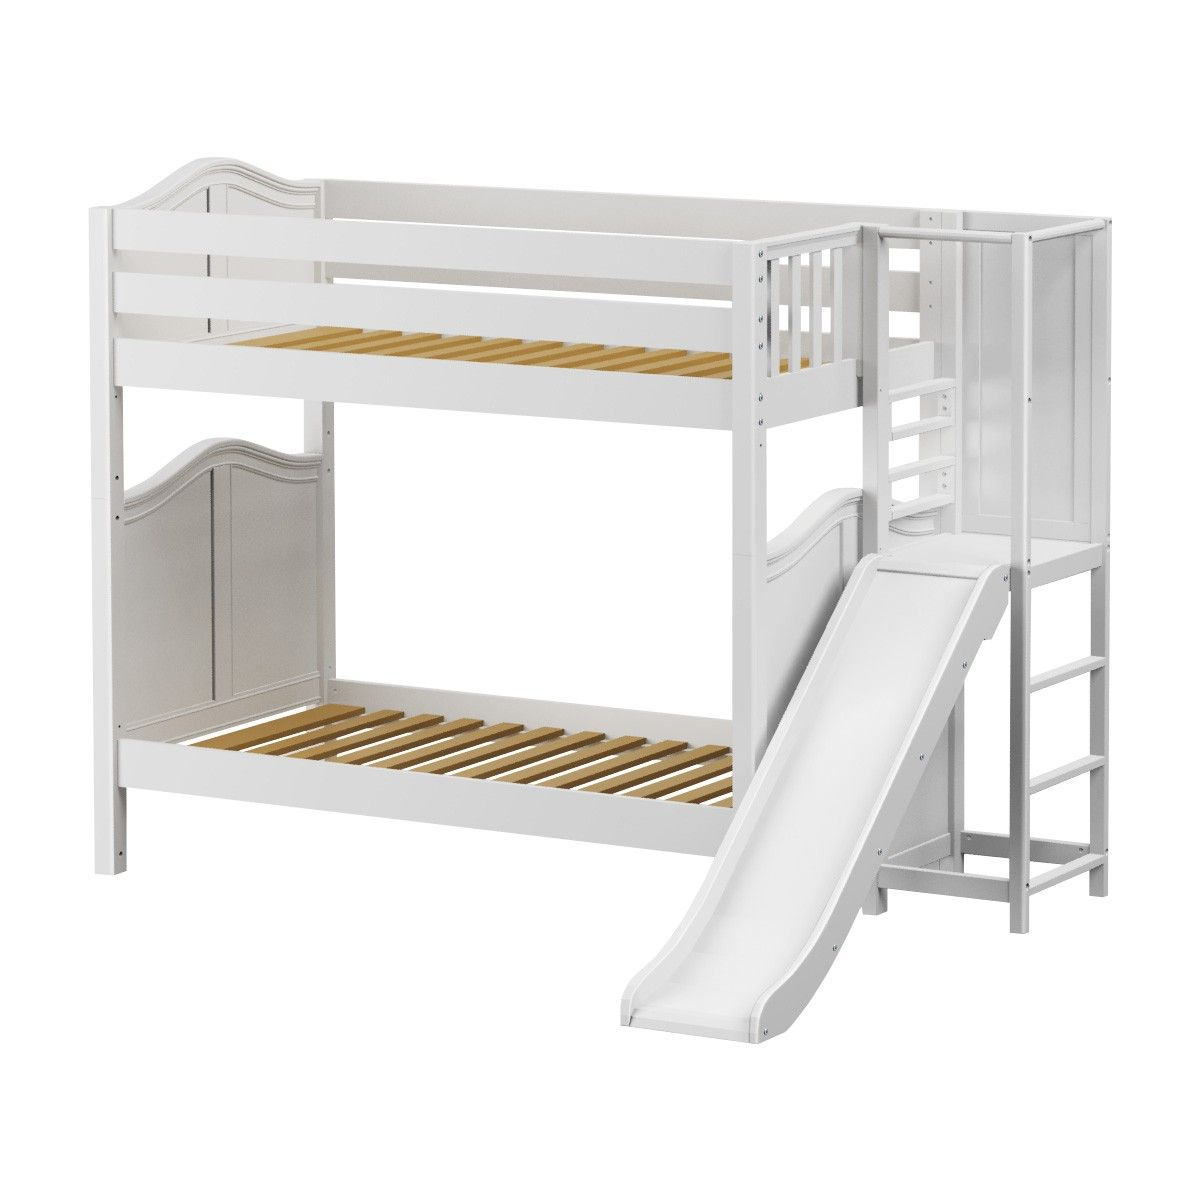 Twin High Bunk Bed With Slide Platform Bed With Slide Bunk Beds